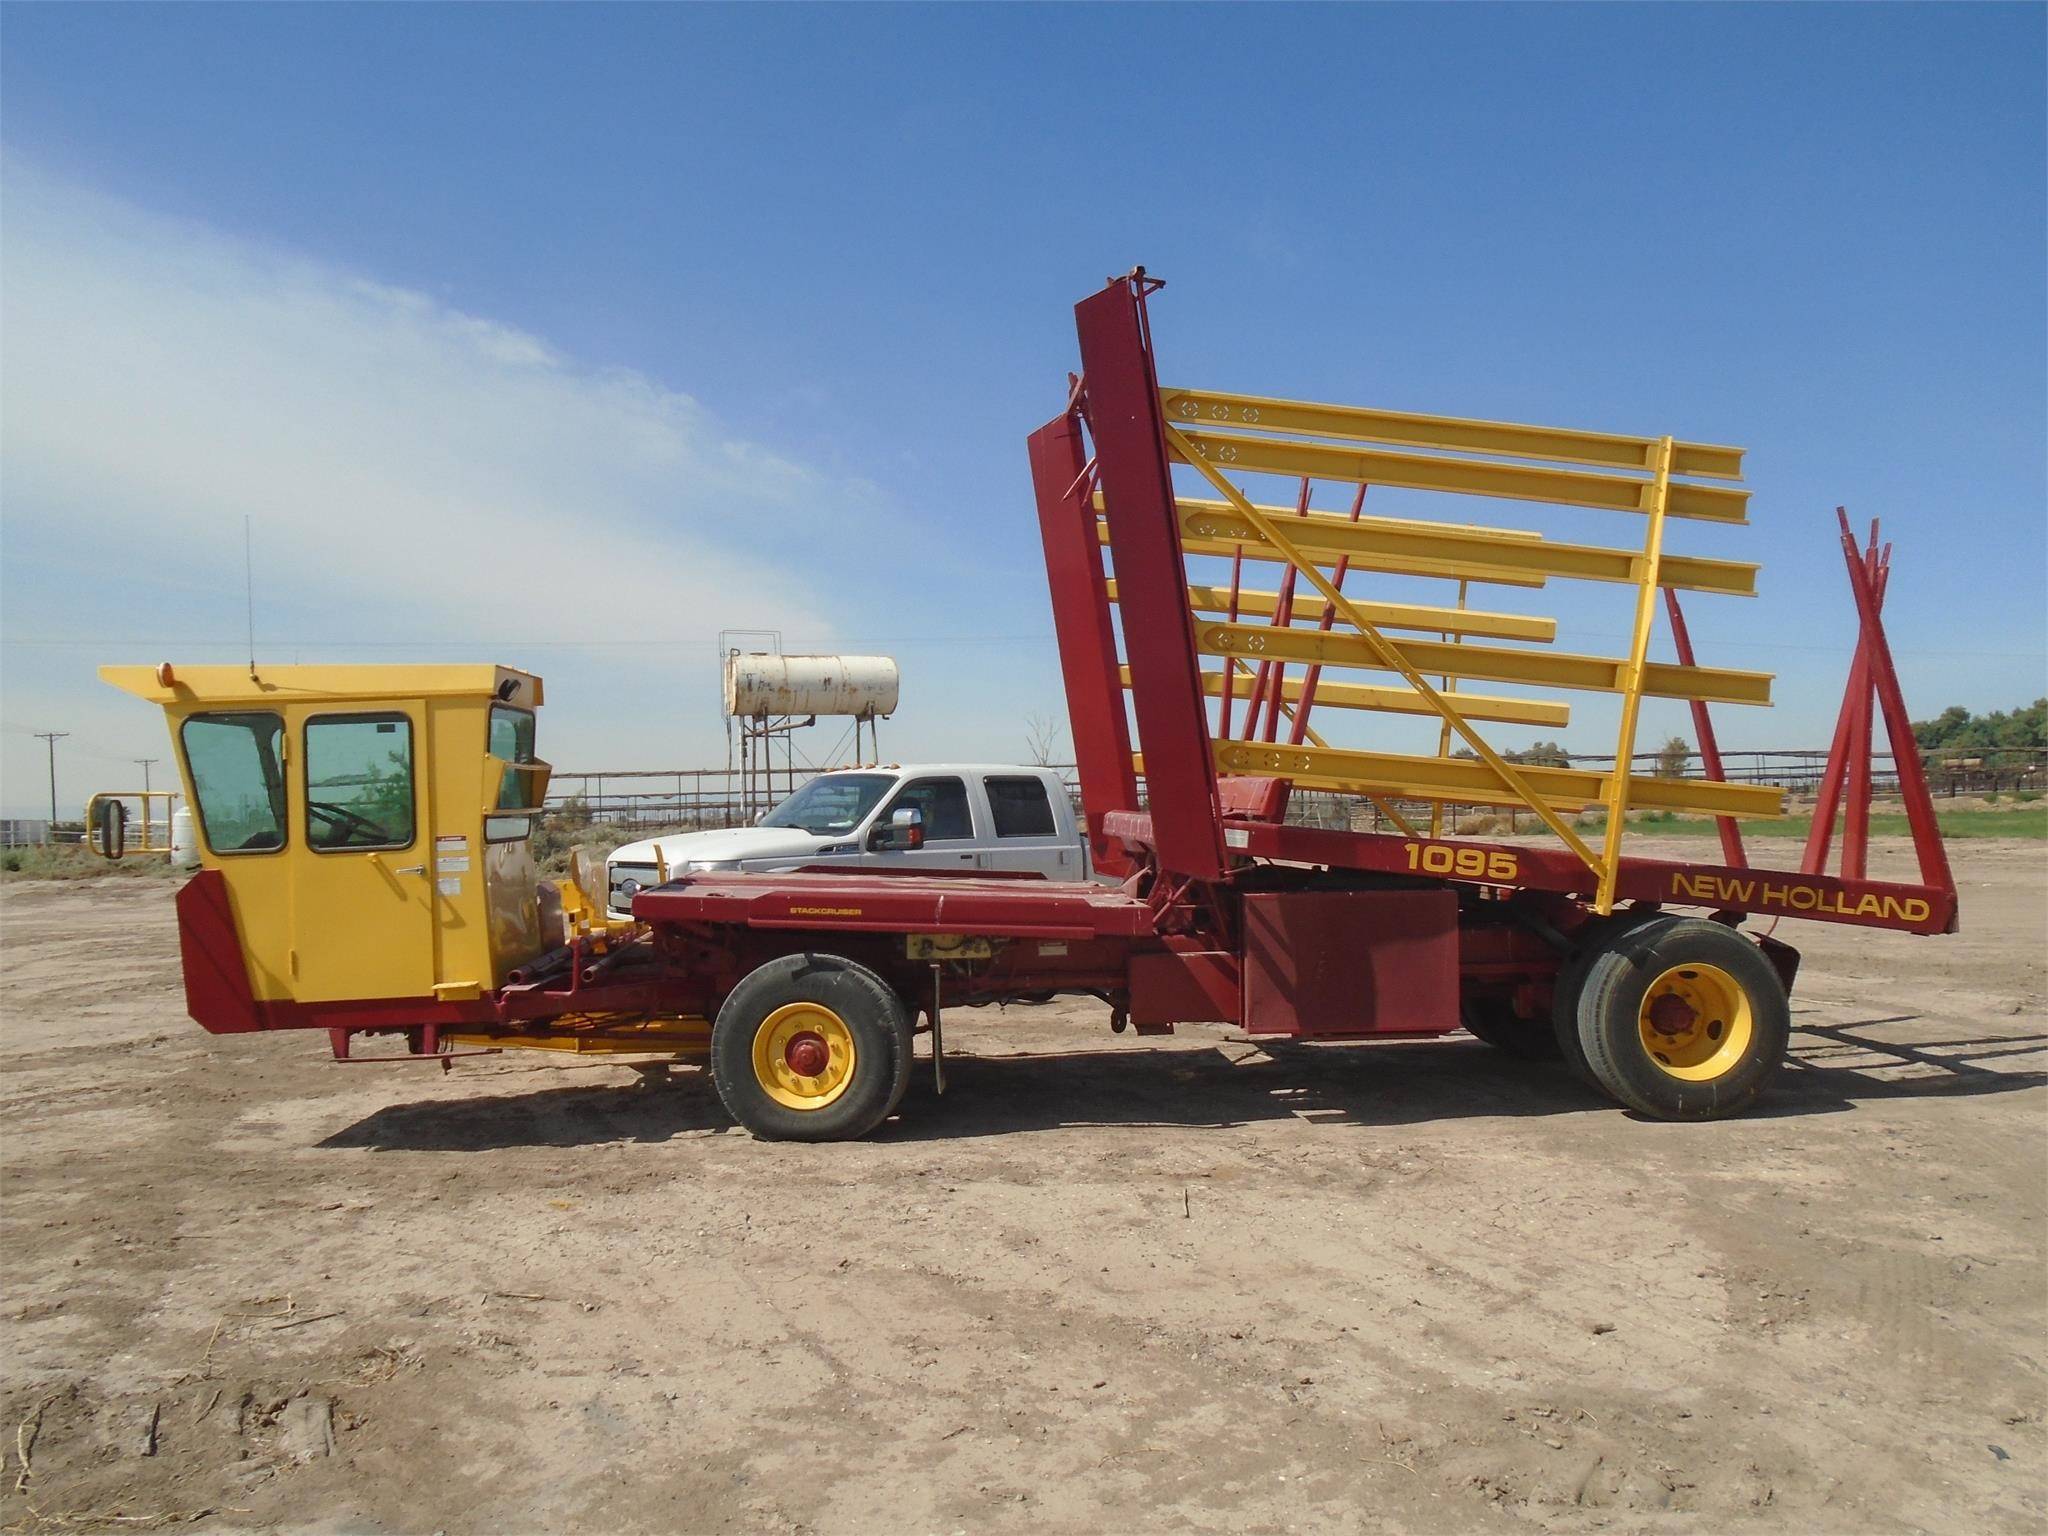 New Holland 1095 Bale Wagons And